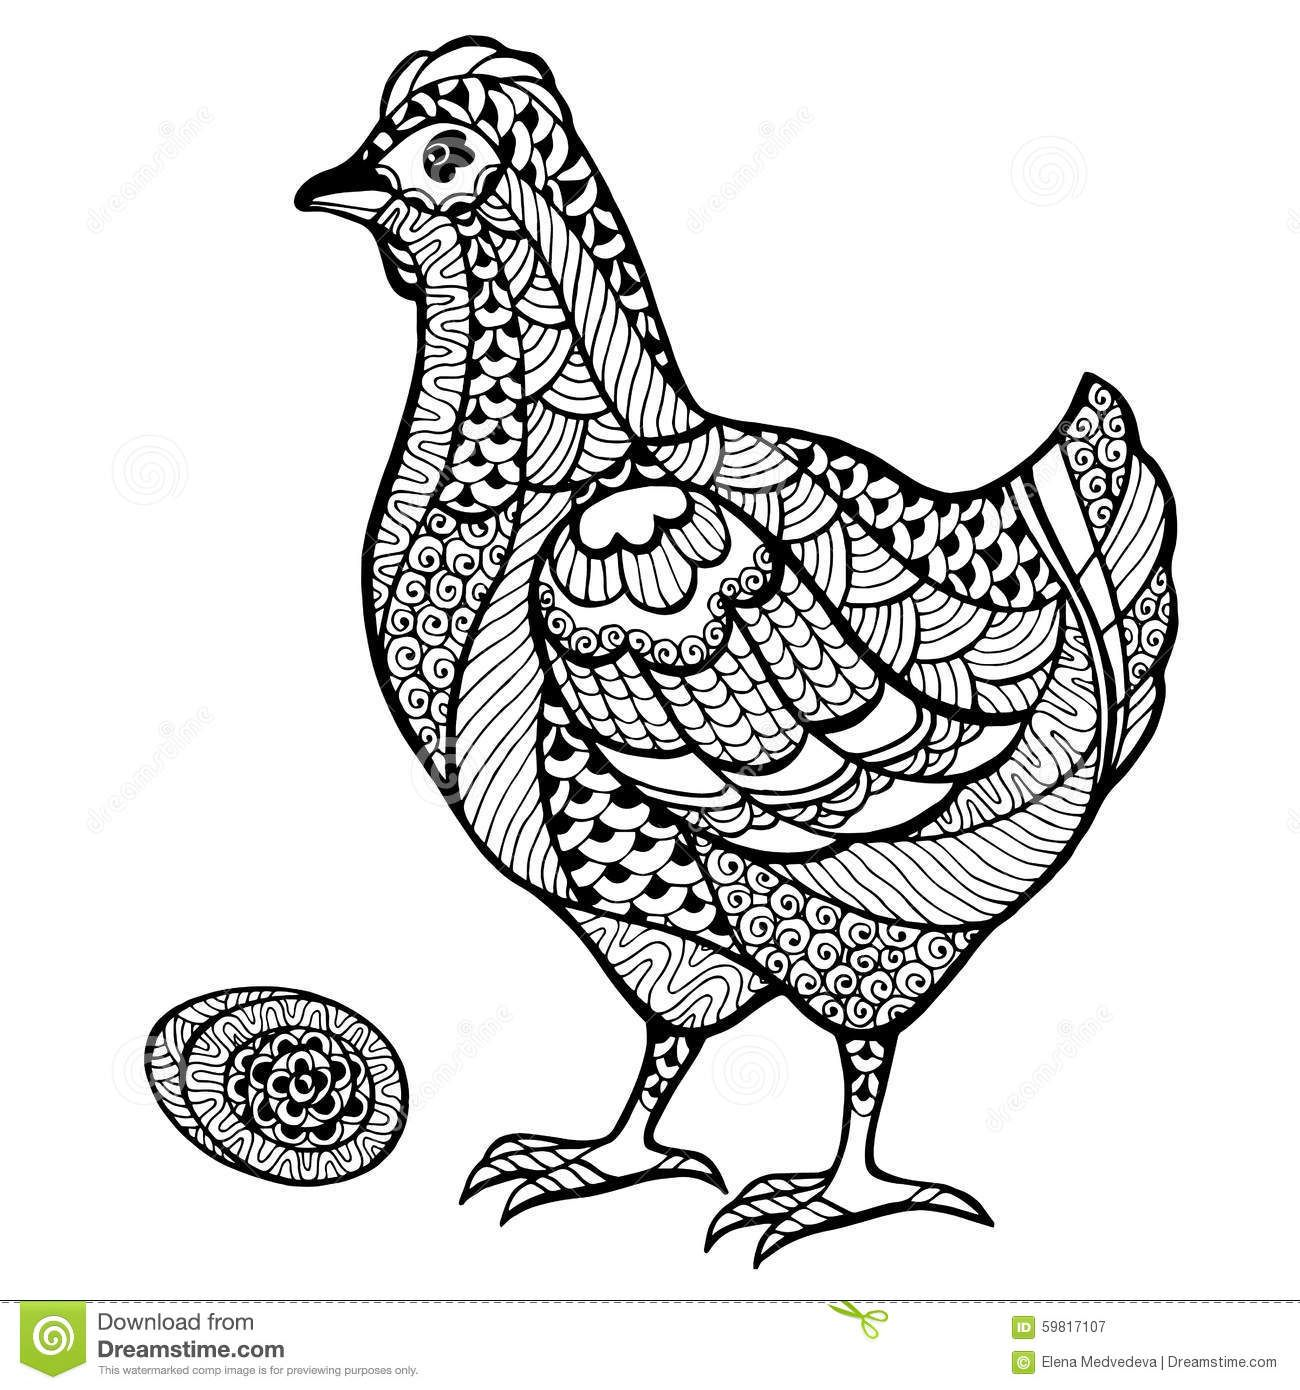 Zentangle Stylized Chicken With Egg. - Download From Over 37 Million ...